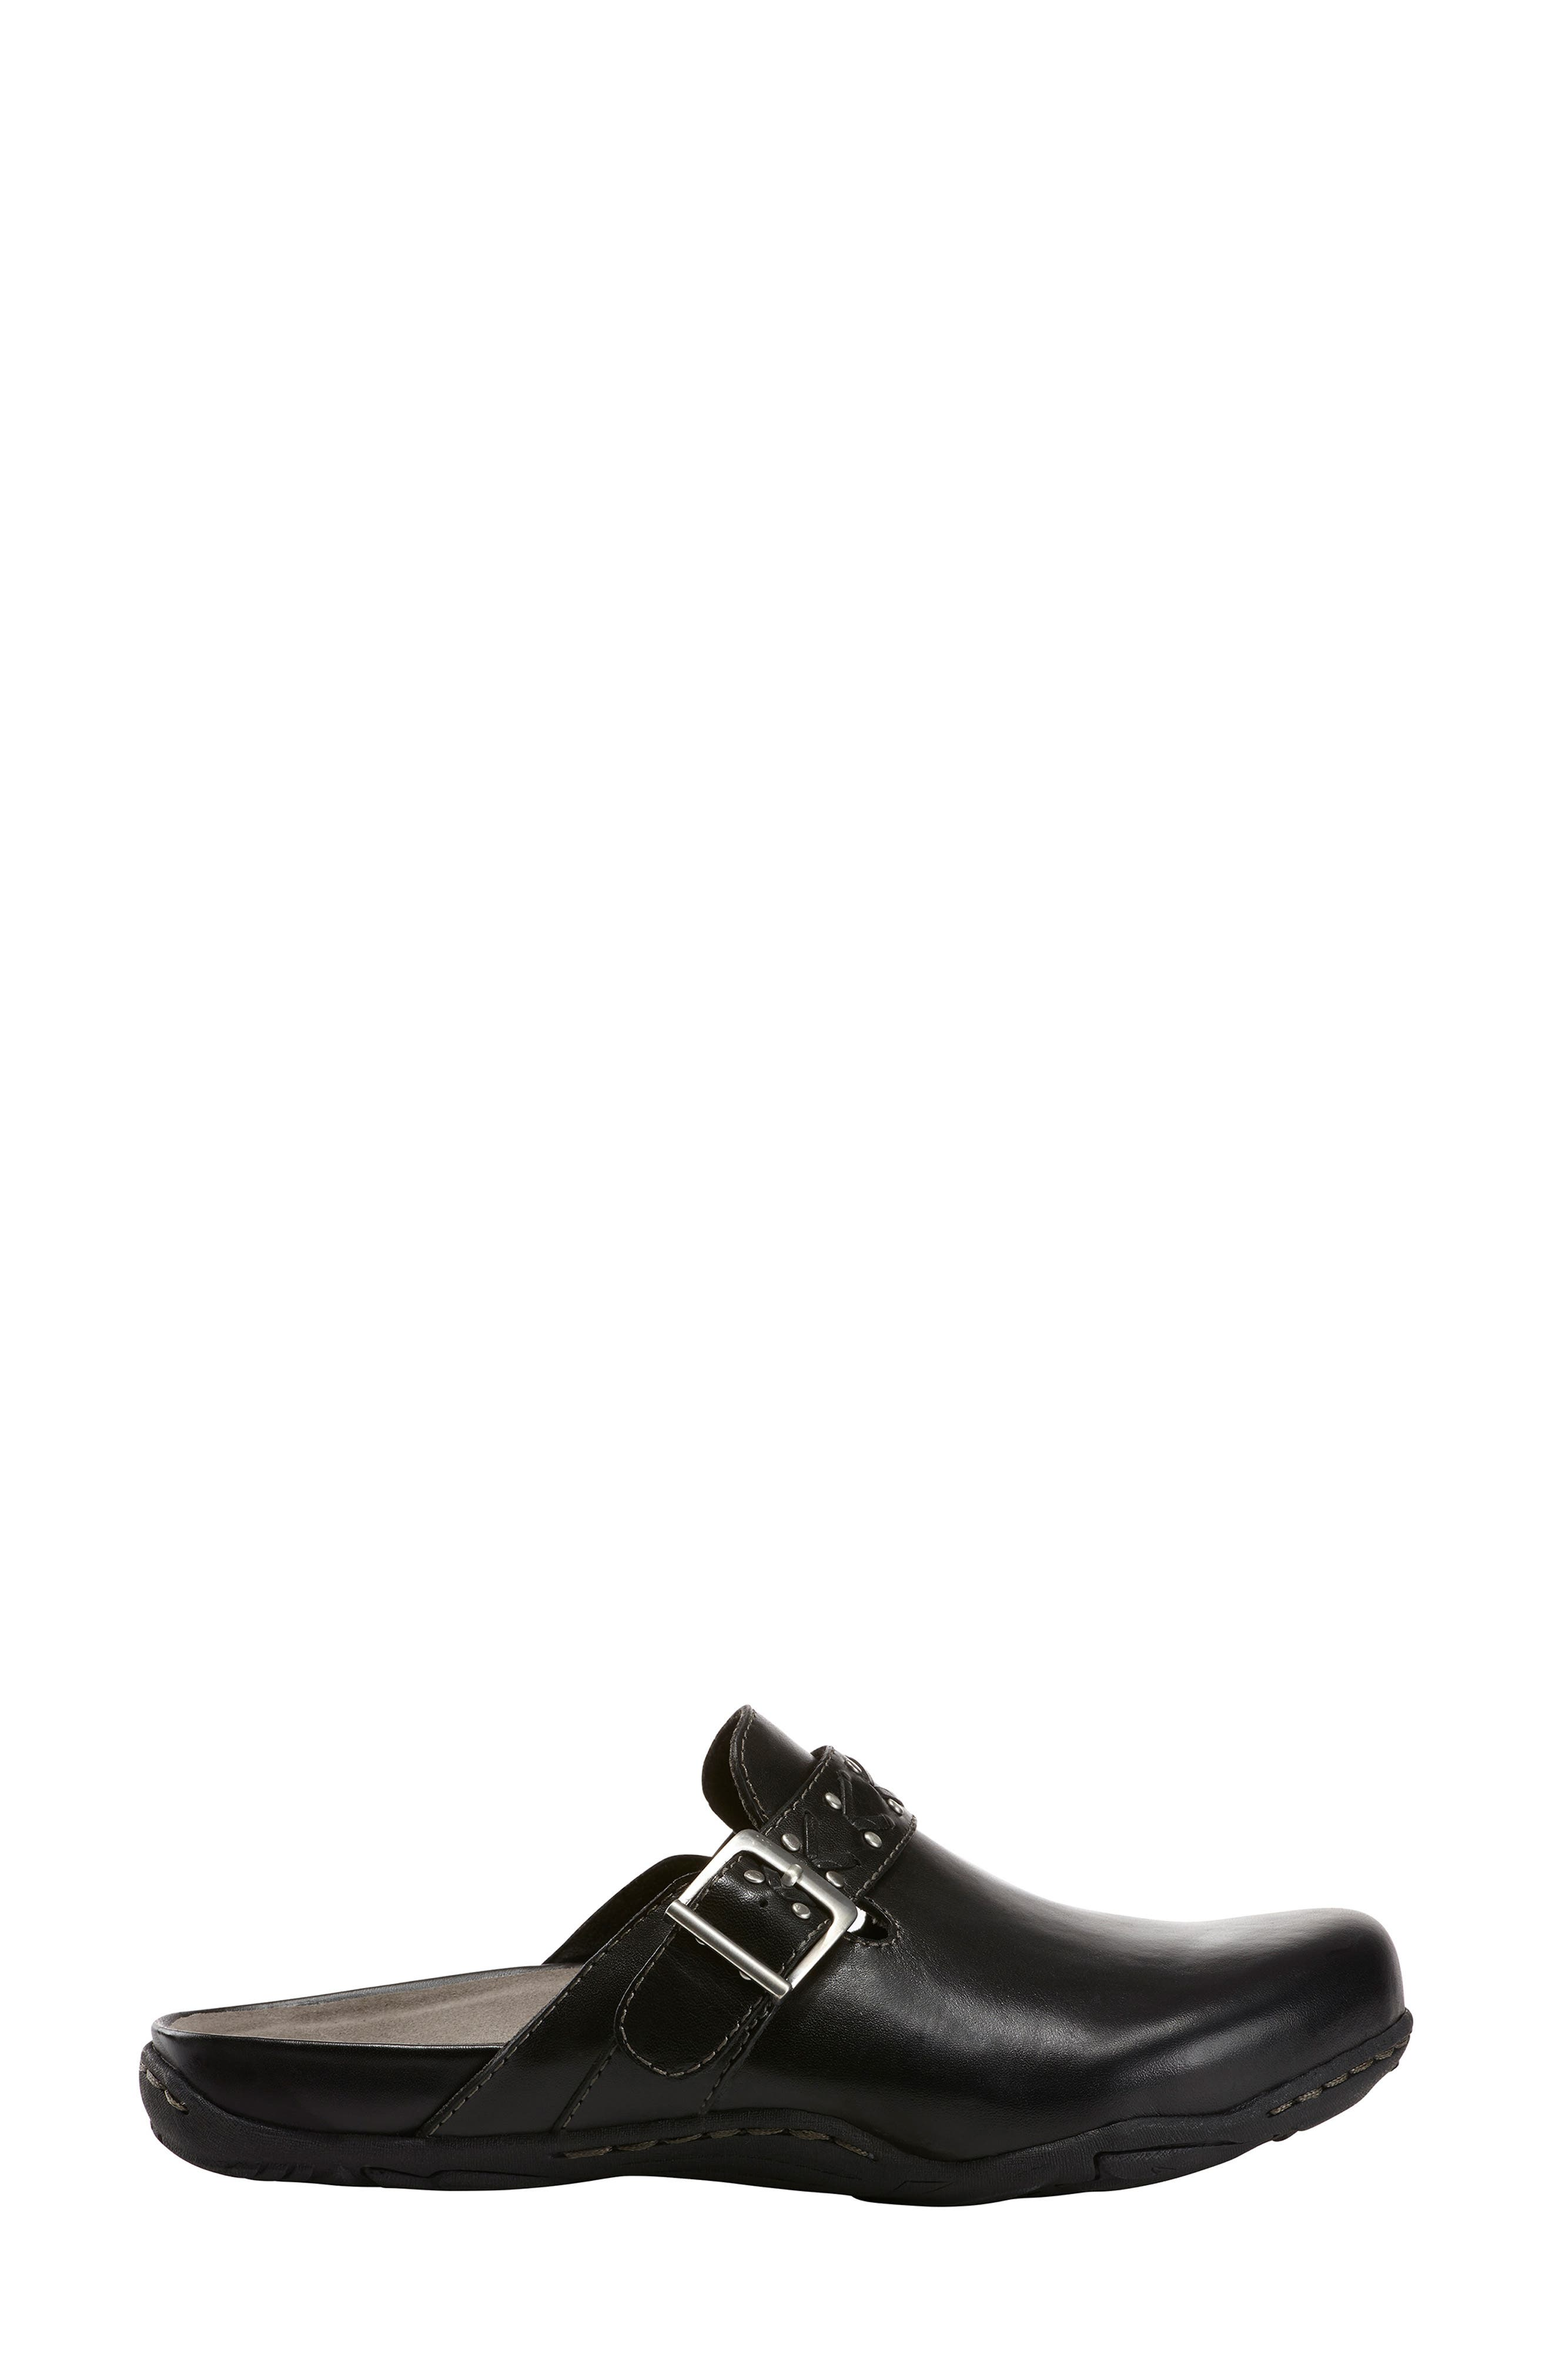 Cayman Clog,                             Alternate thumbnail 3, color,                             BLACK LEATHER